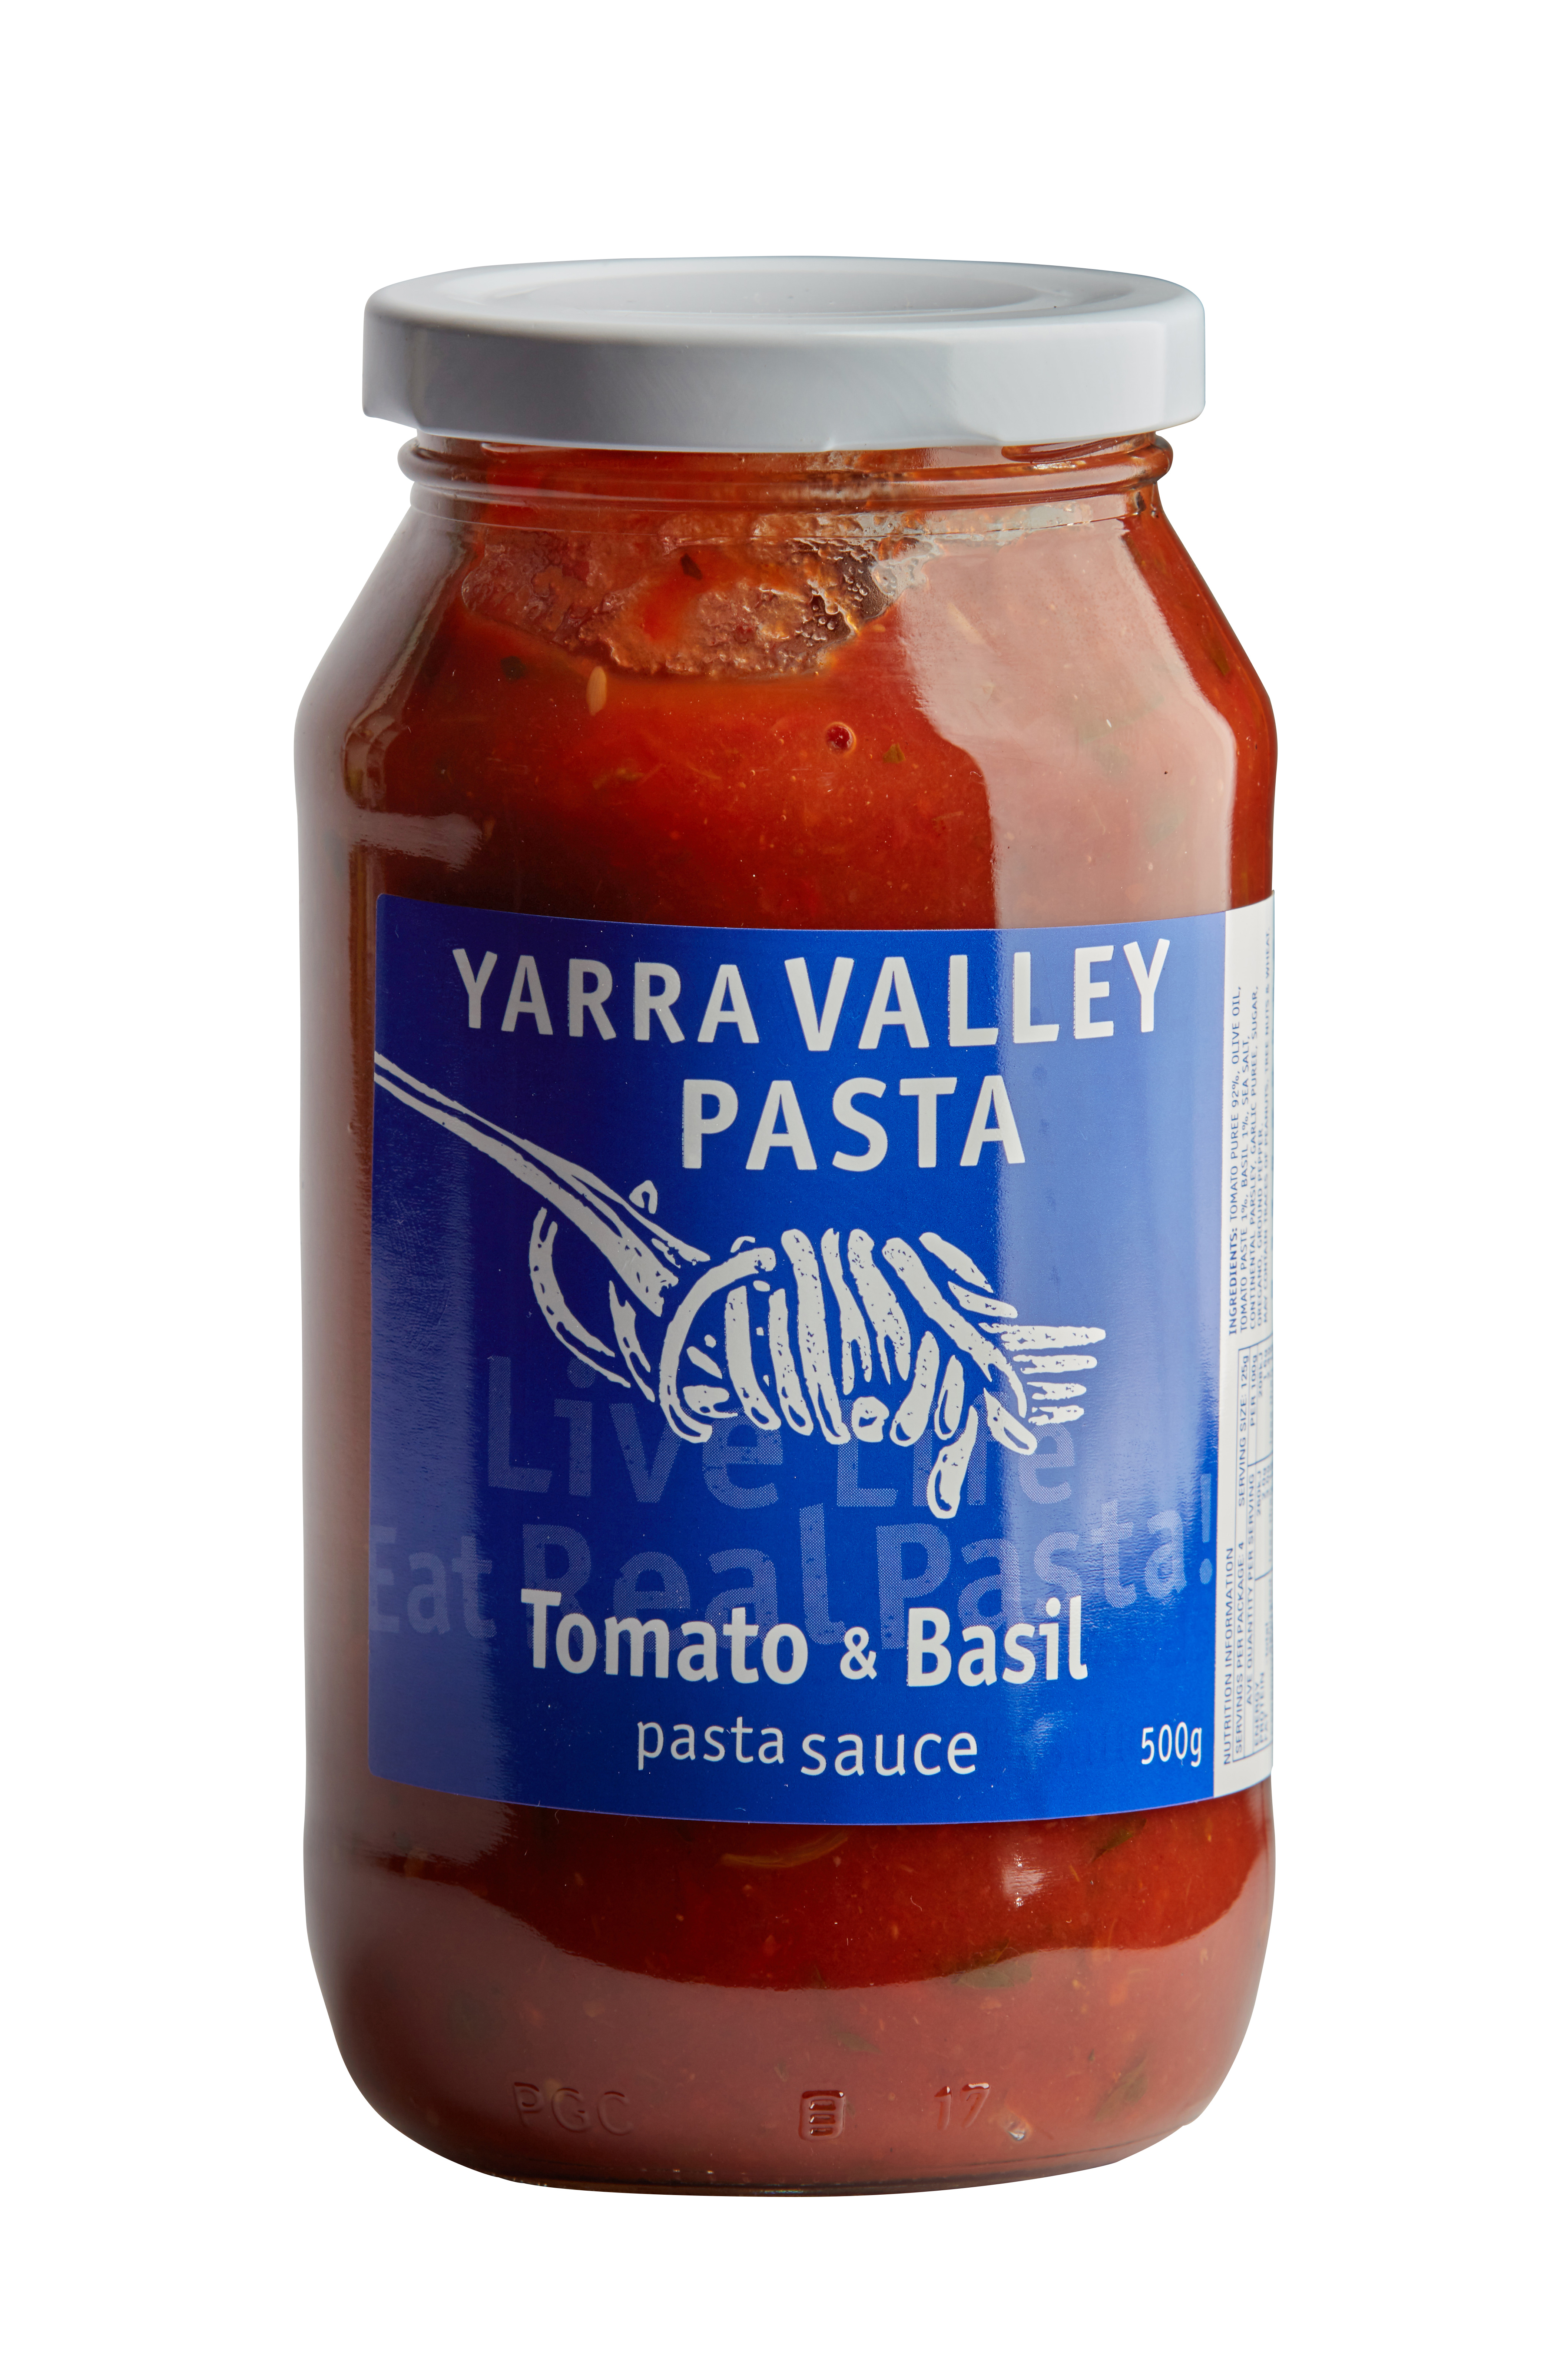 Yarra Valley Pasta Tomato and Basil Sauce